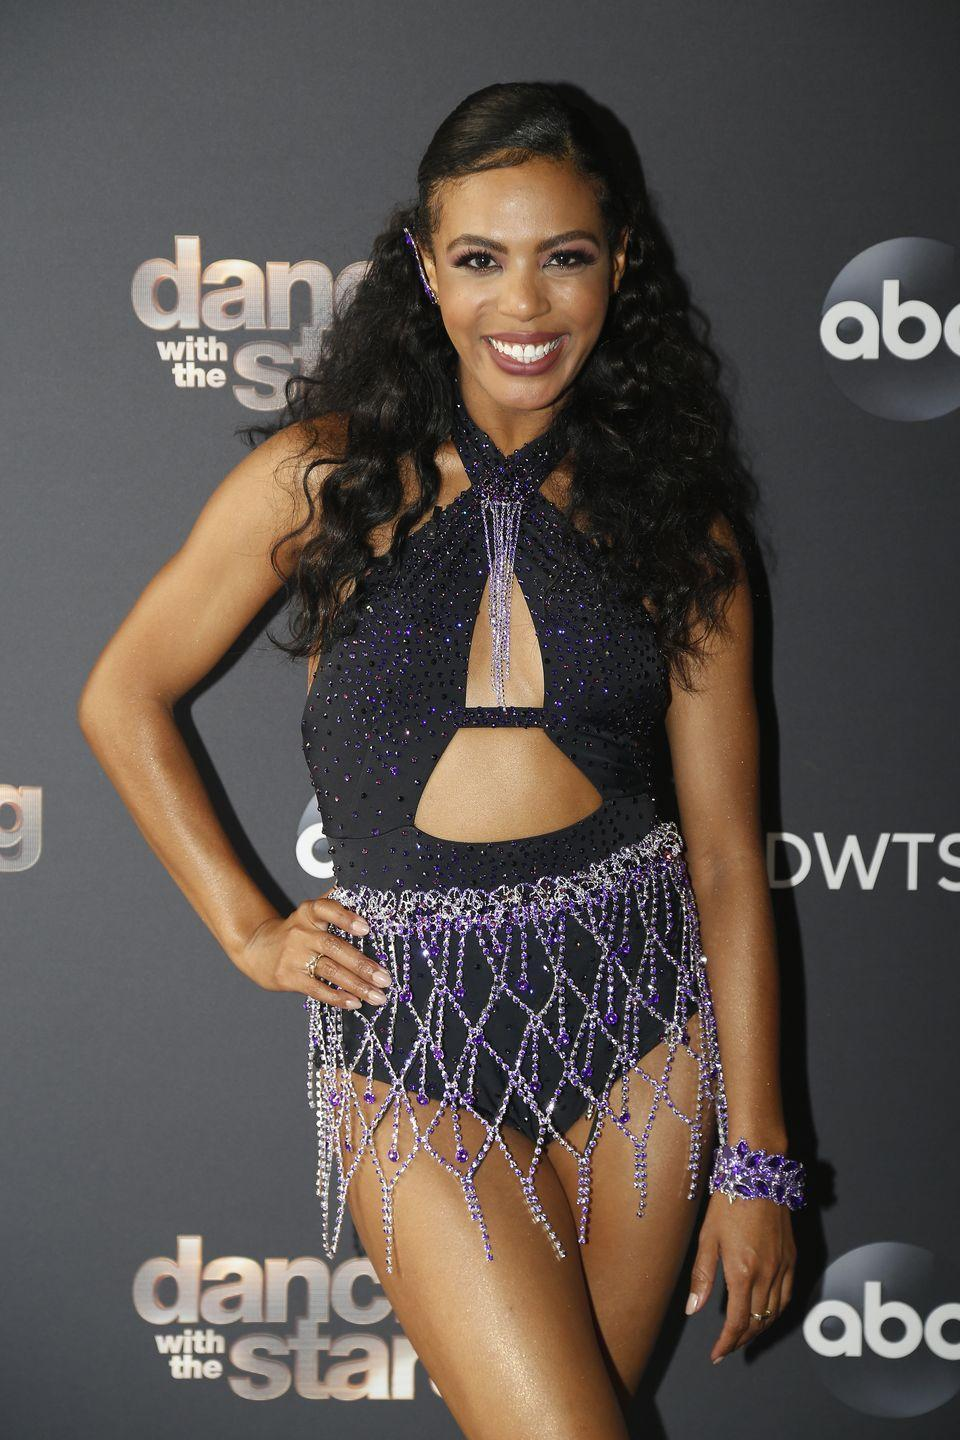 "<p><a href=""https://www.womenshealthmag.com/life/a33893418/britt-stewart-dancing-with-the-stars/"" rel=""nofollow noopener"" target=""_blank"" data-ylk=""slk:Britt is DWTS's first-ever Black female pro"" class=""link rapid-noclick-resp"">Britt is<em> DWTS</em>'s first-ever Black female pro</a>. She's hardly new to the show, though. She was on ""troupe"" for five seasons and also went on tour with the show. ""I'm just so grateful, so excited and over the moon, honestly. Ever since I found out, I just don't really know what to do with myself. So much excitement, so much emotion,"" she told <em><a href=""https://urldefense.com/v3/__https://www.etonline.com/dancing-with-the-stars-britt-stewart-reacts-to-being-the-first-black-female-pro-exclusive-151508__;!!Ivohdkk!1fog6xwaF5AhU7FQp5rPYPK9351qE5UJjMdj5FlWPKTUeC2VzpfkKzdShaovu-fnnbU$"" rel=""nofollow noopener"" target=""_blank"" data-ylk=""slk:ET"" class=""link rapid-noclick-resp"">ET</a></em>.</p>"